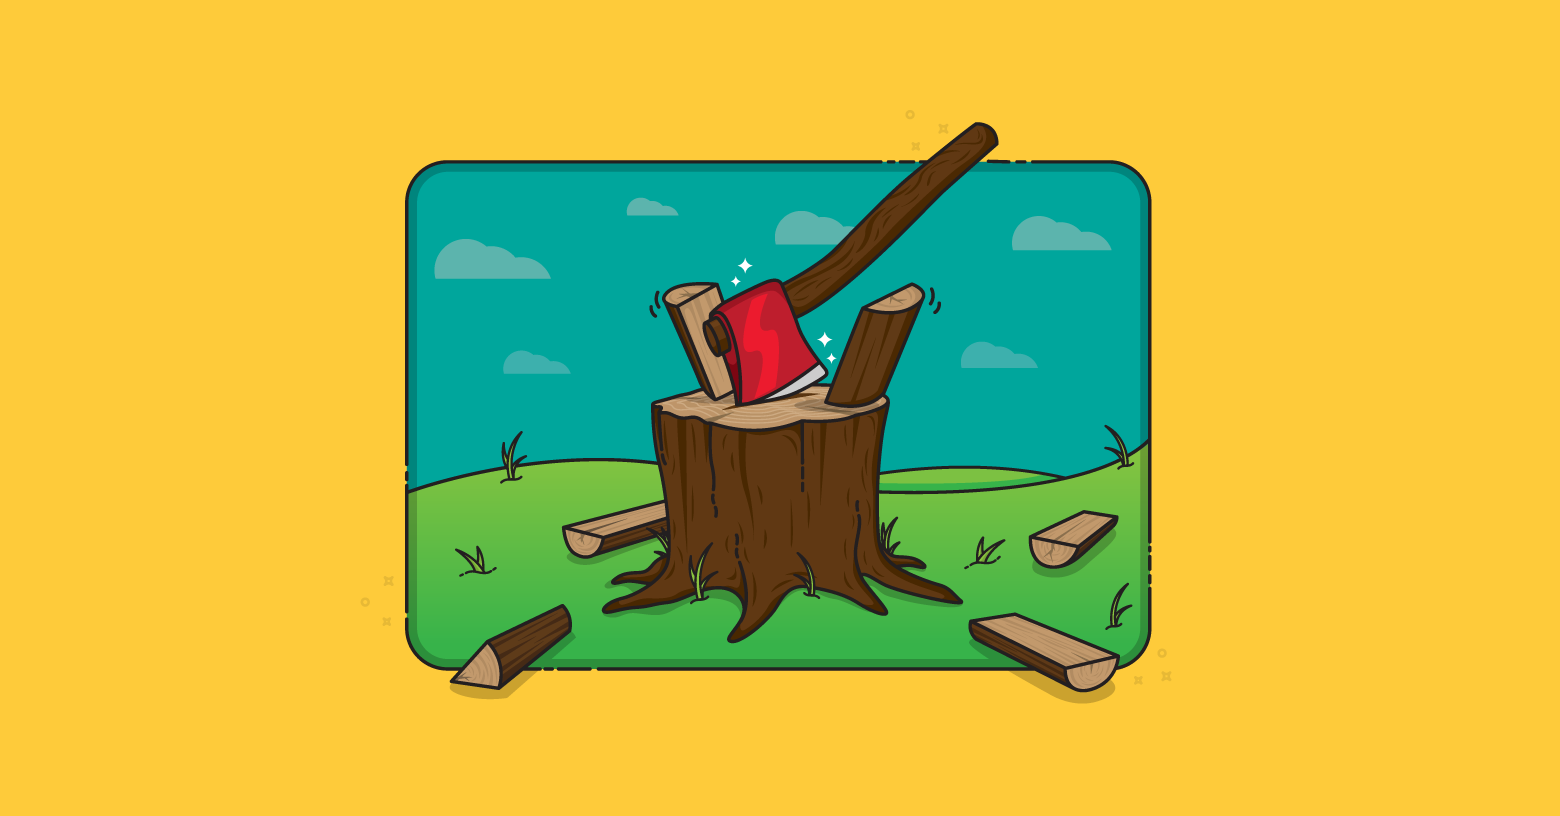 Ax splitting wood to illustrate splitting user stories.